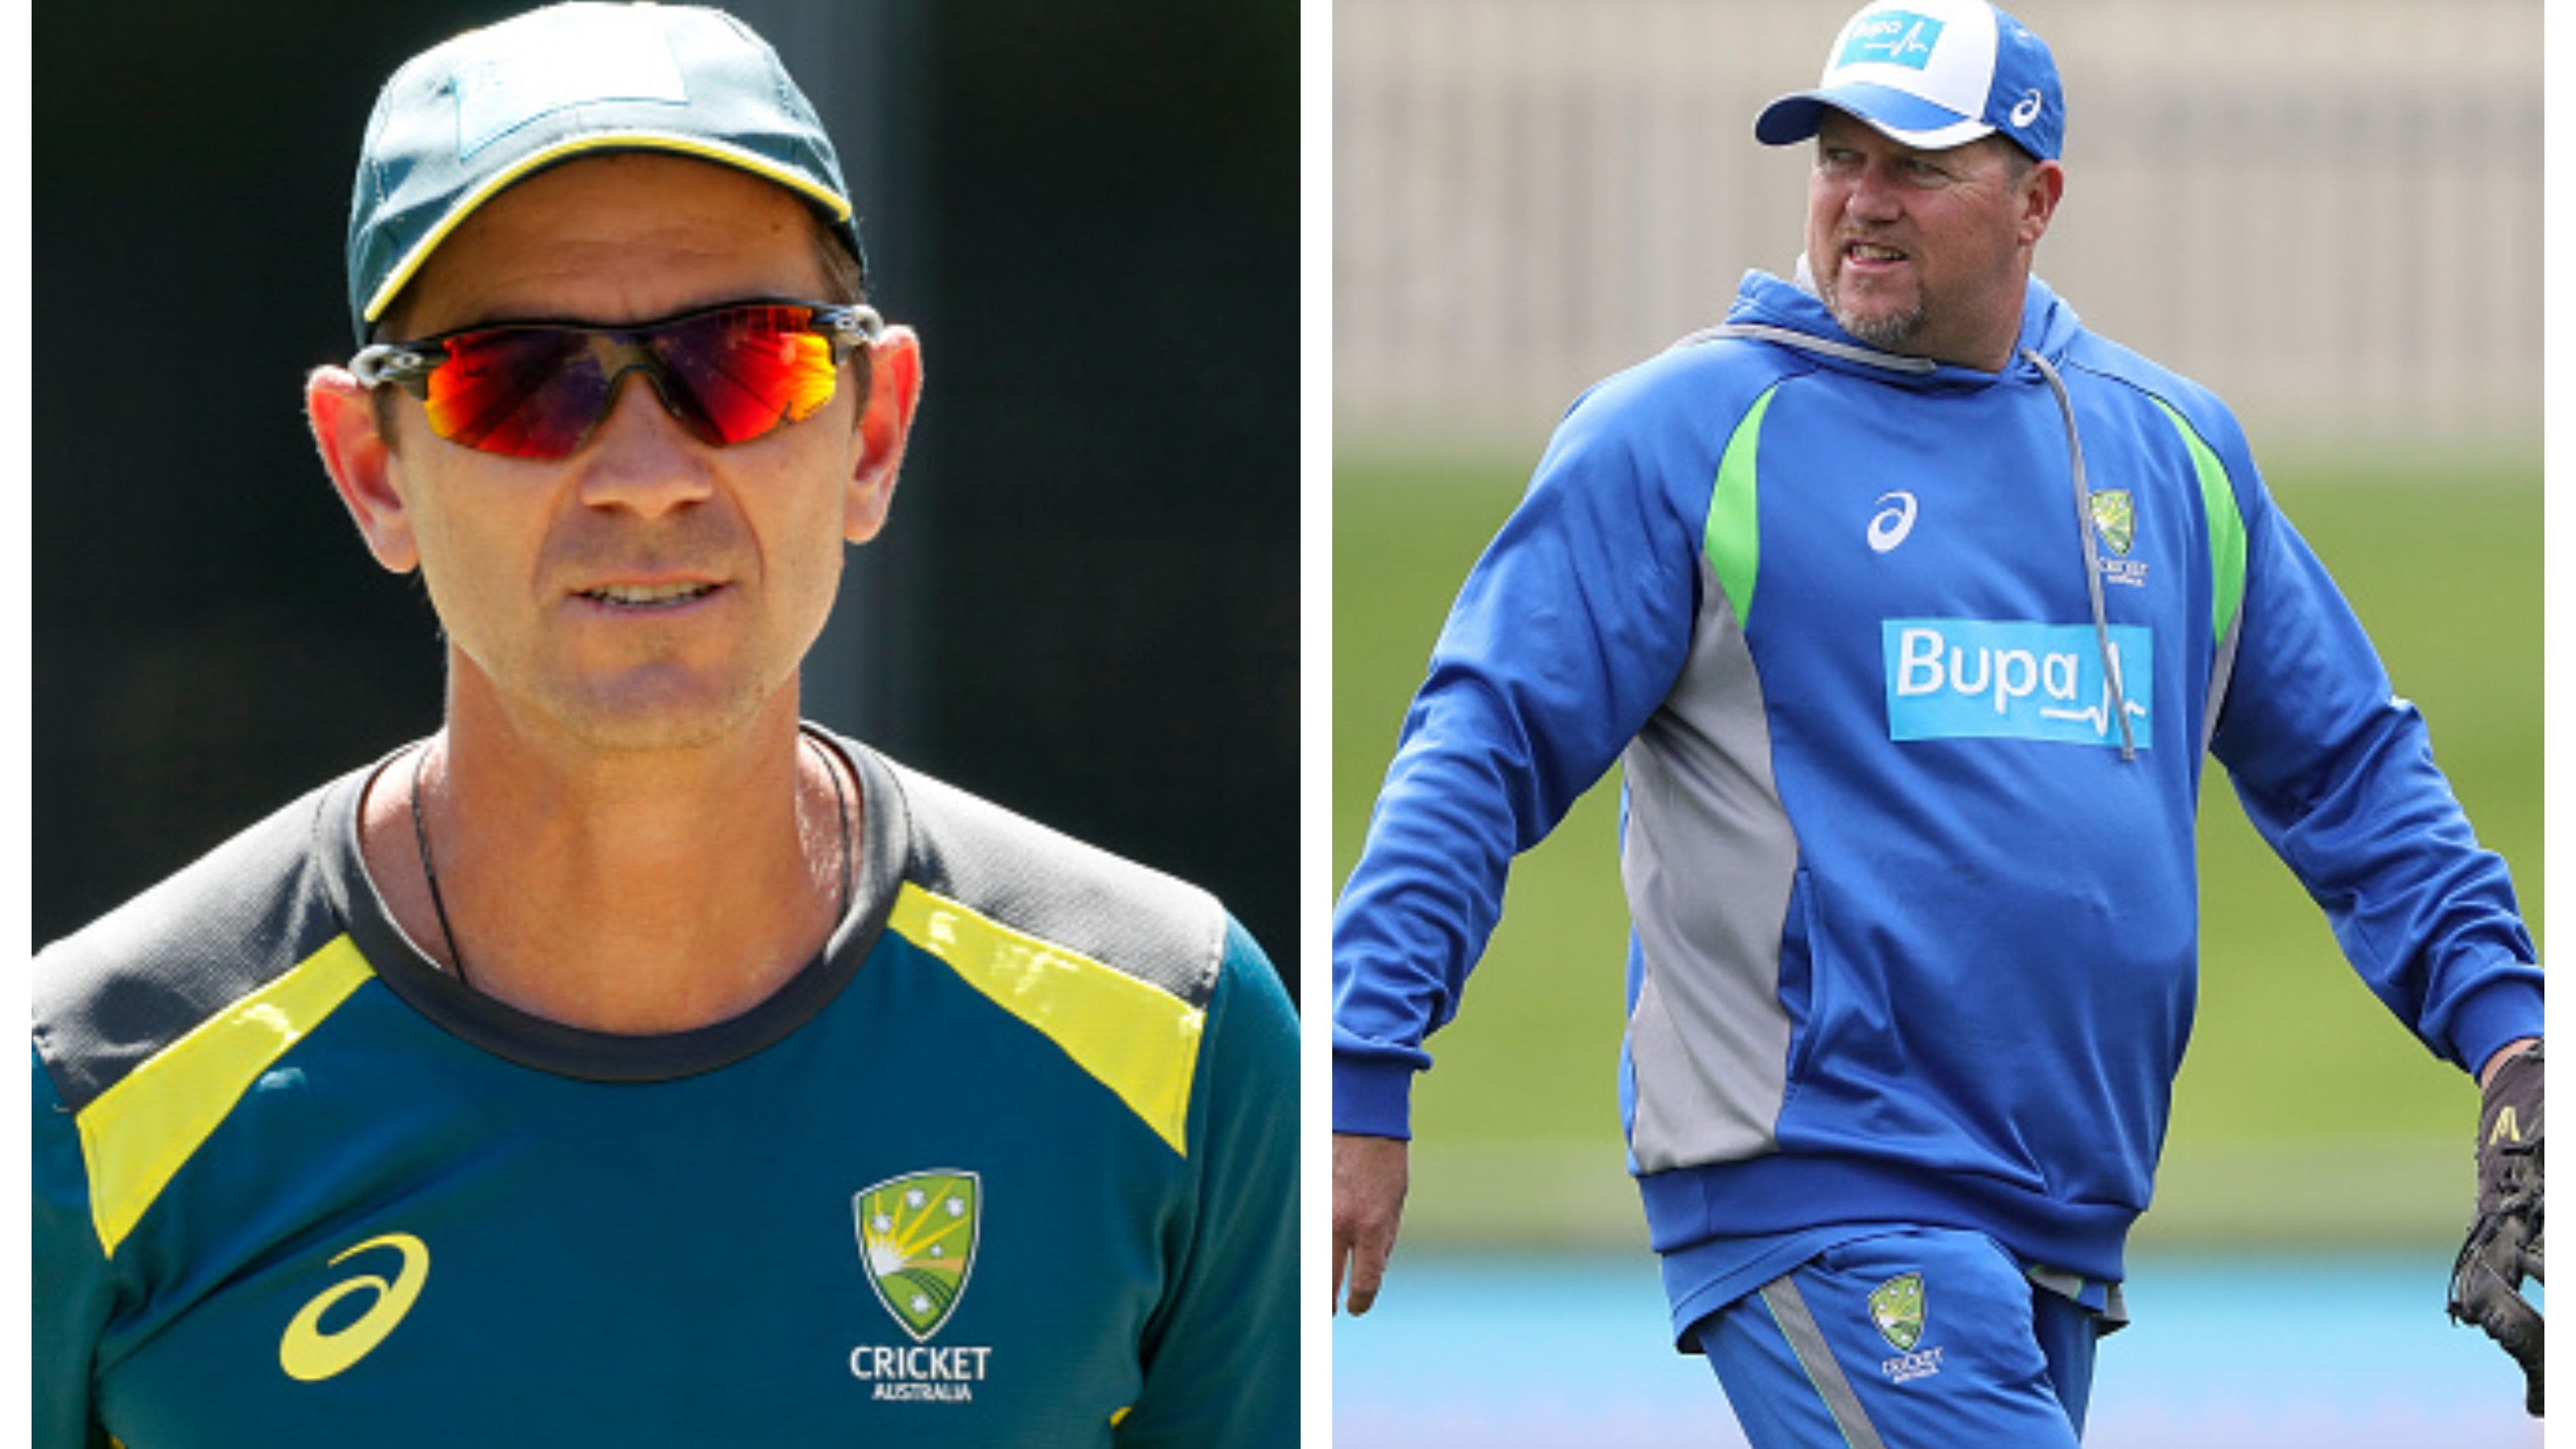 Justin Langer opens up about David Saker's resignation as Australia's assistant coach